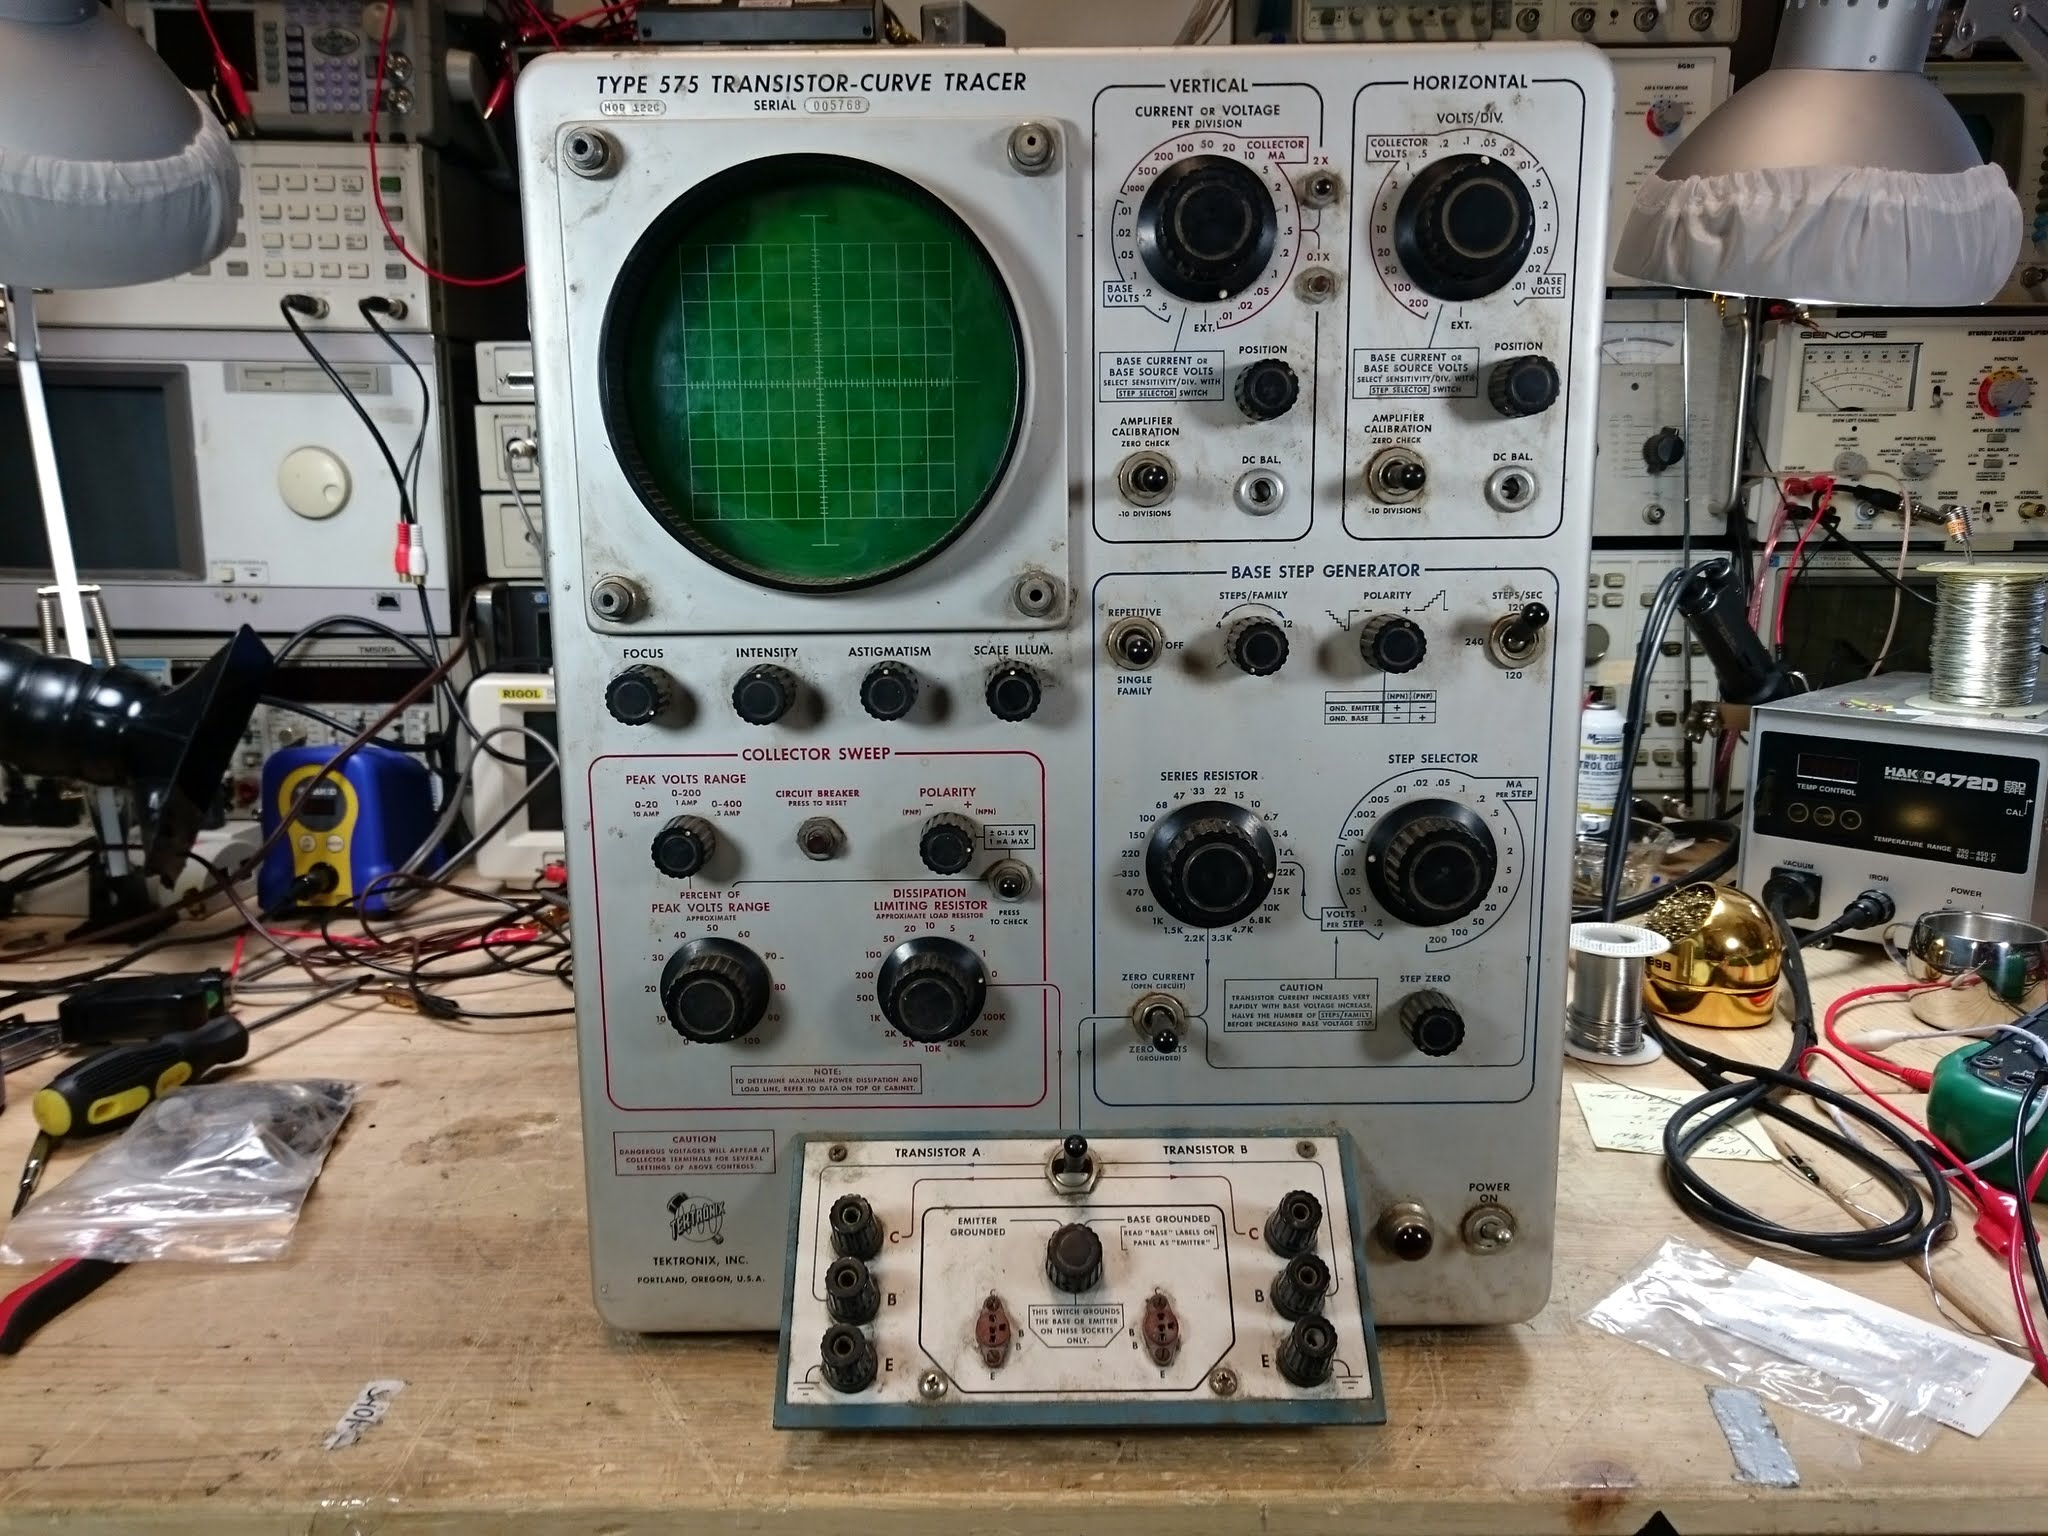 Curve Tracer Circuit Oscilloscope Tektronix 575 Mod 122c Restoration Project Part 1